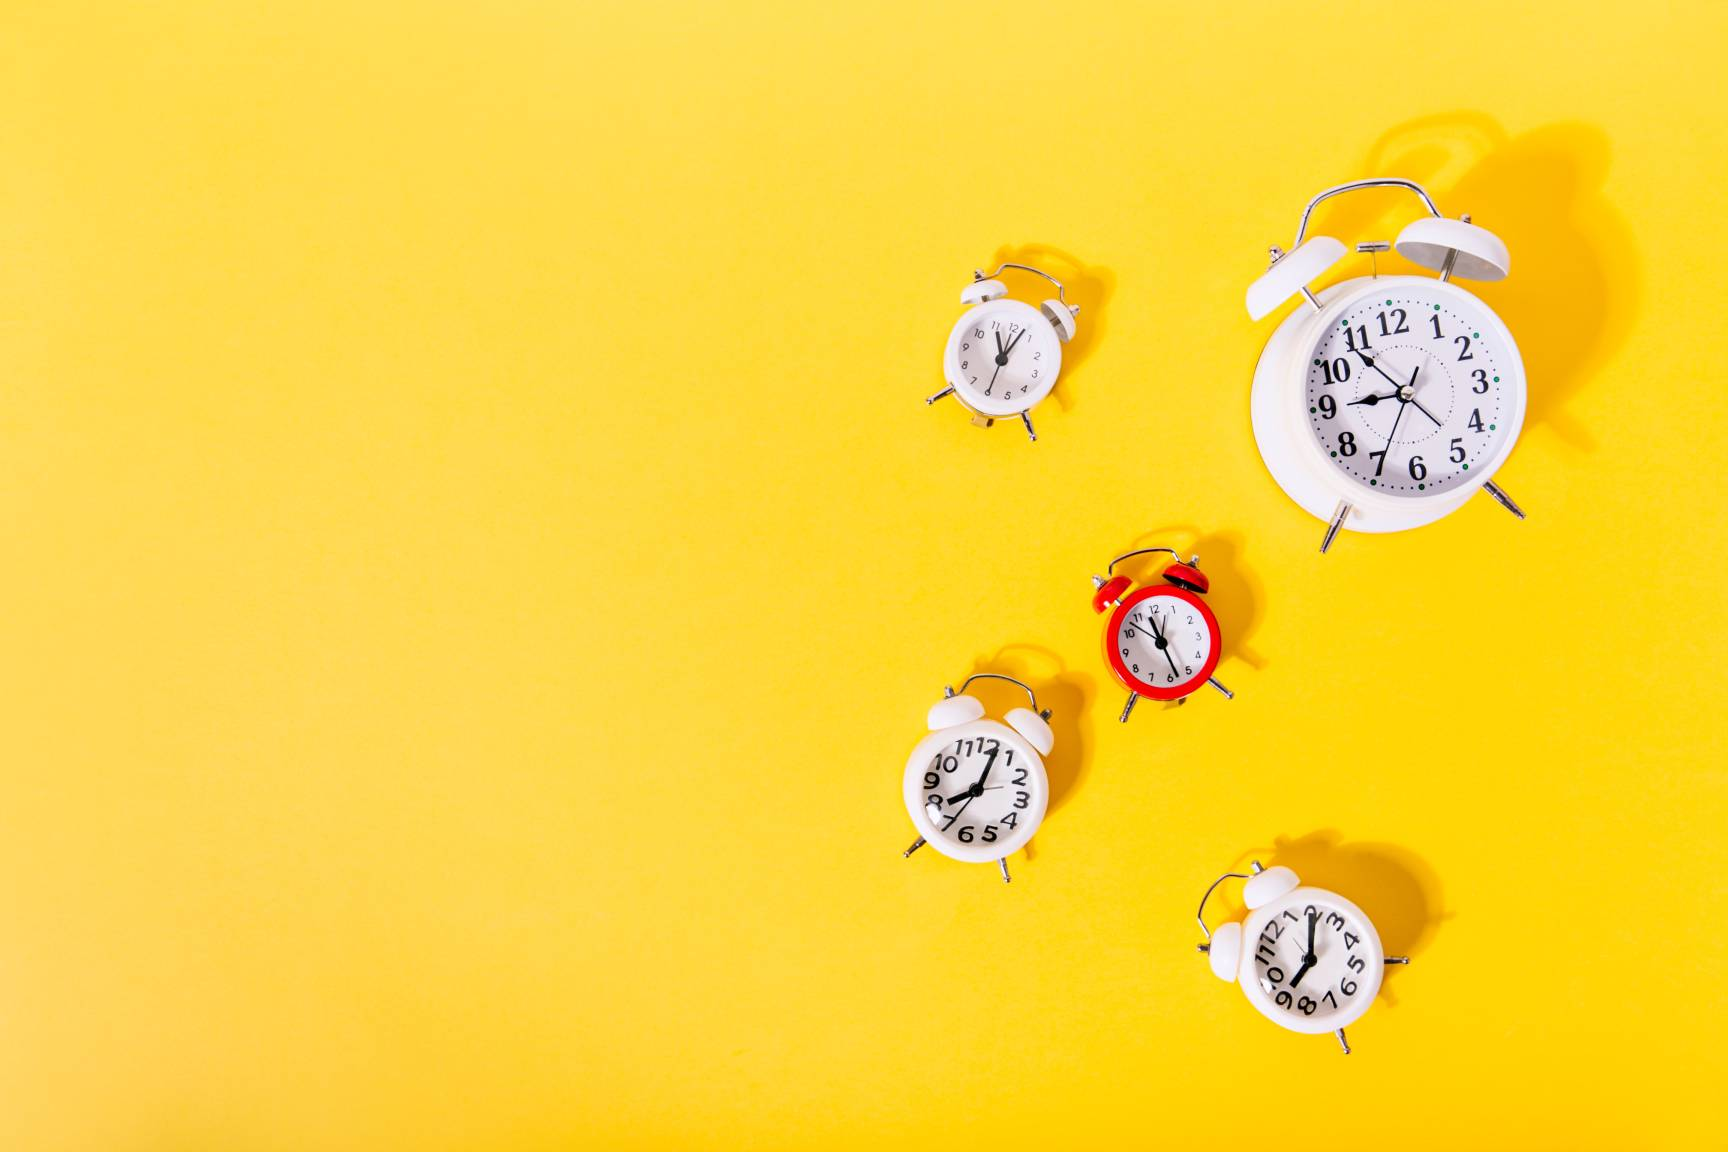 alarm clocks against a yellow background-timelines